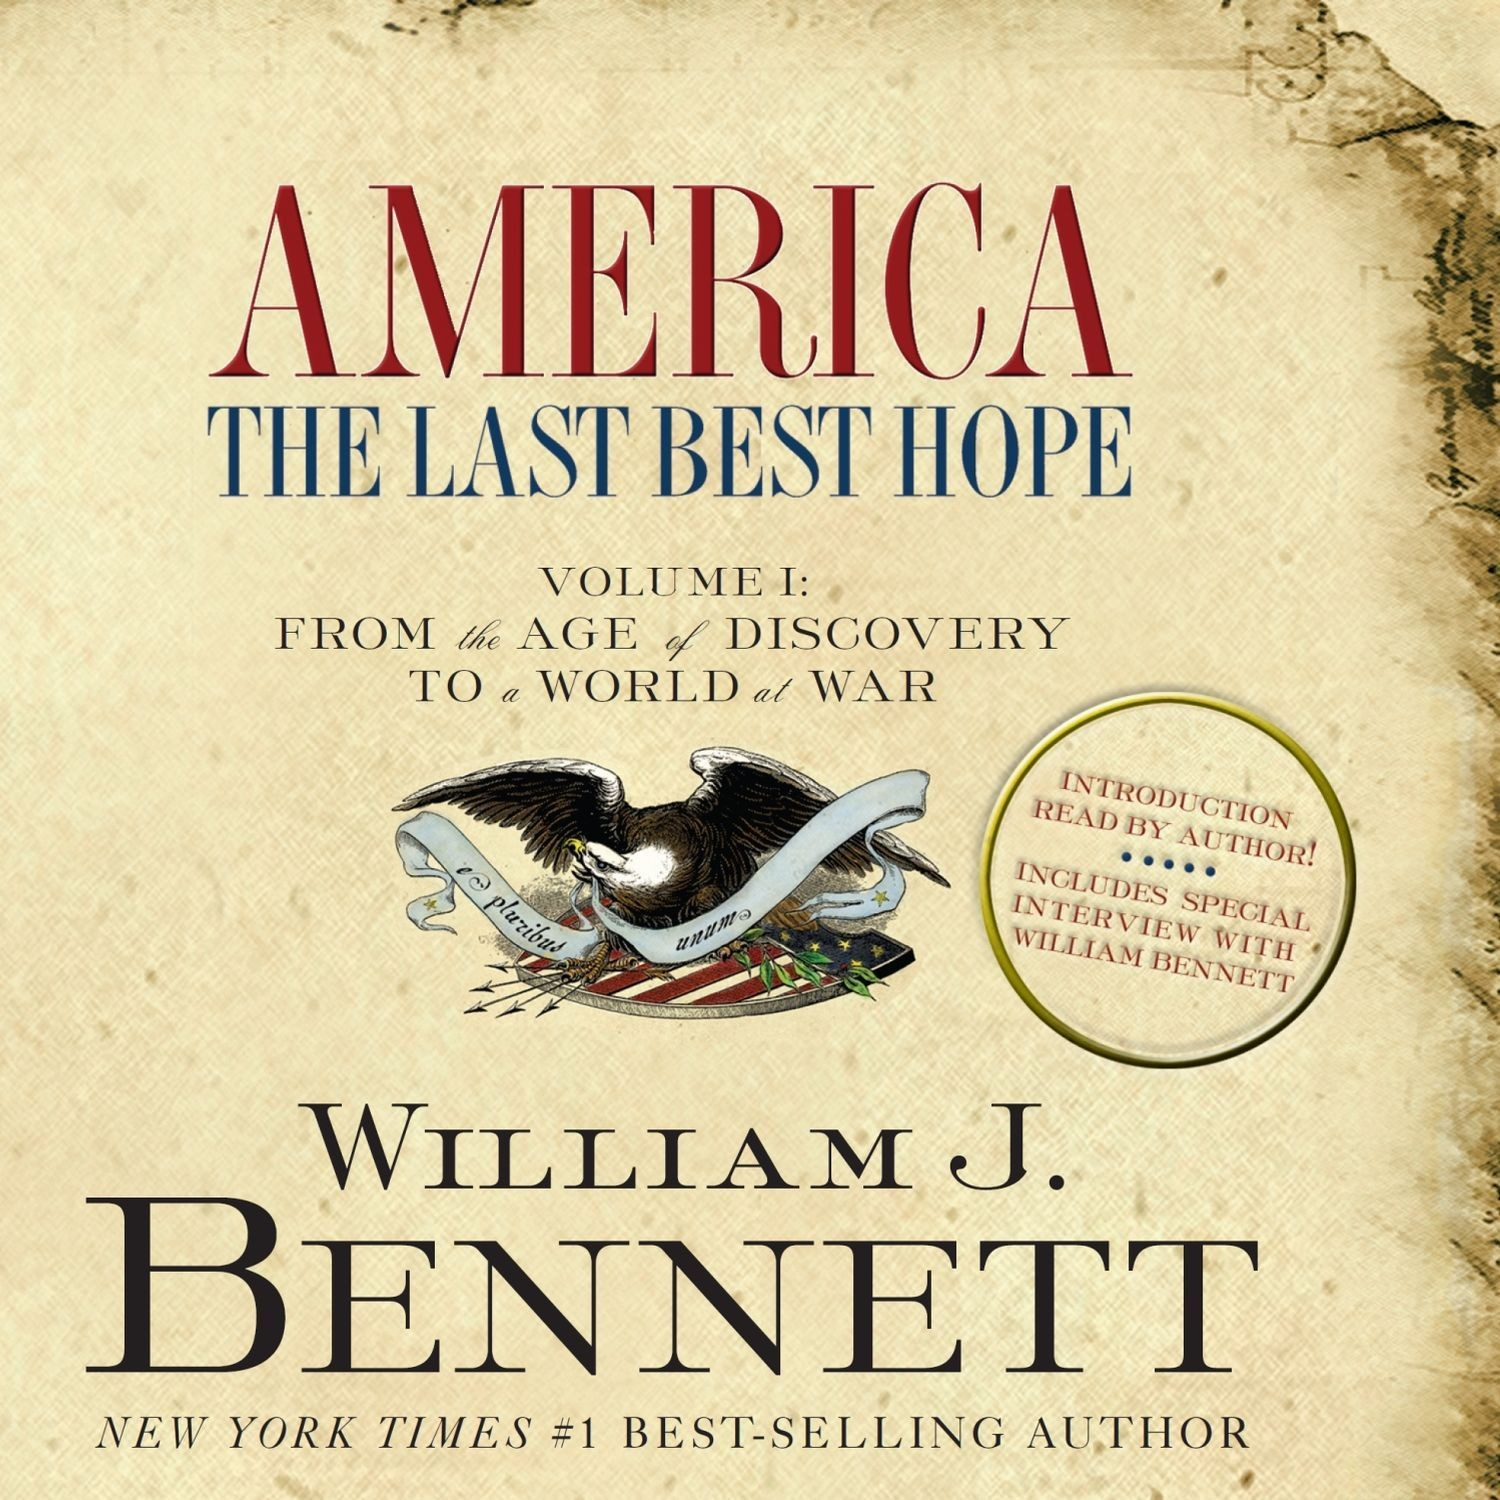 Printable America: The Last Best Hope (Volume I): From the Age of Discovery to a World at War Audiobook Cover Art